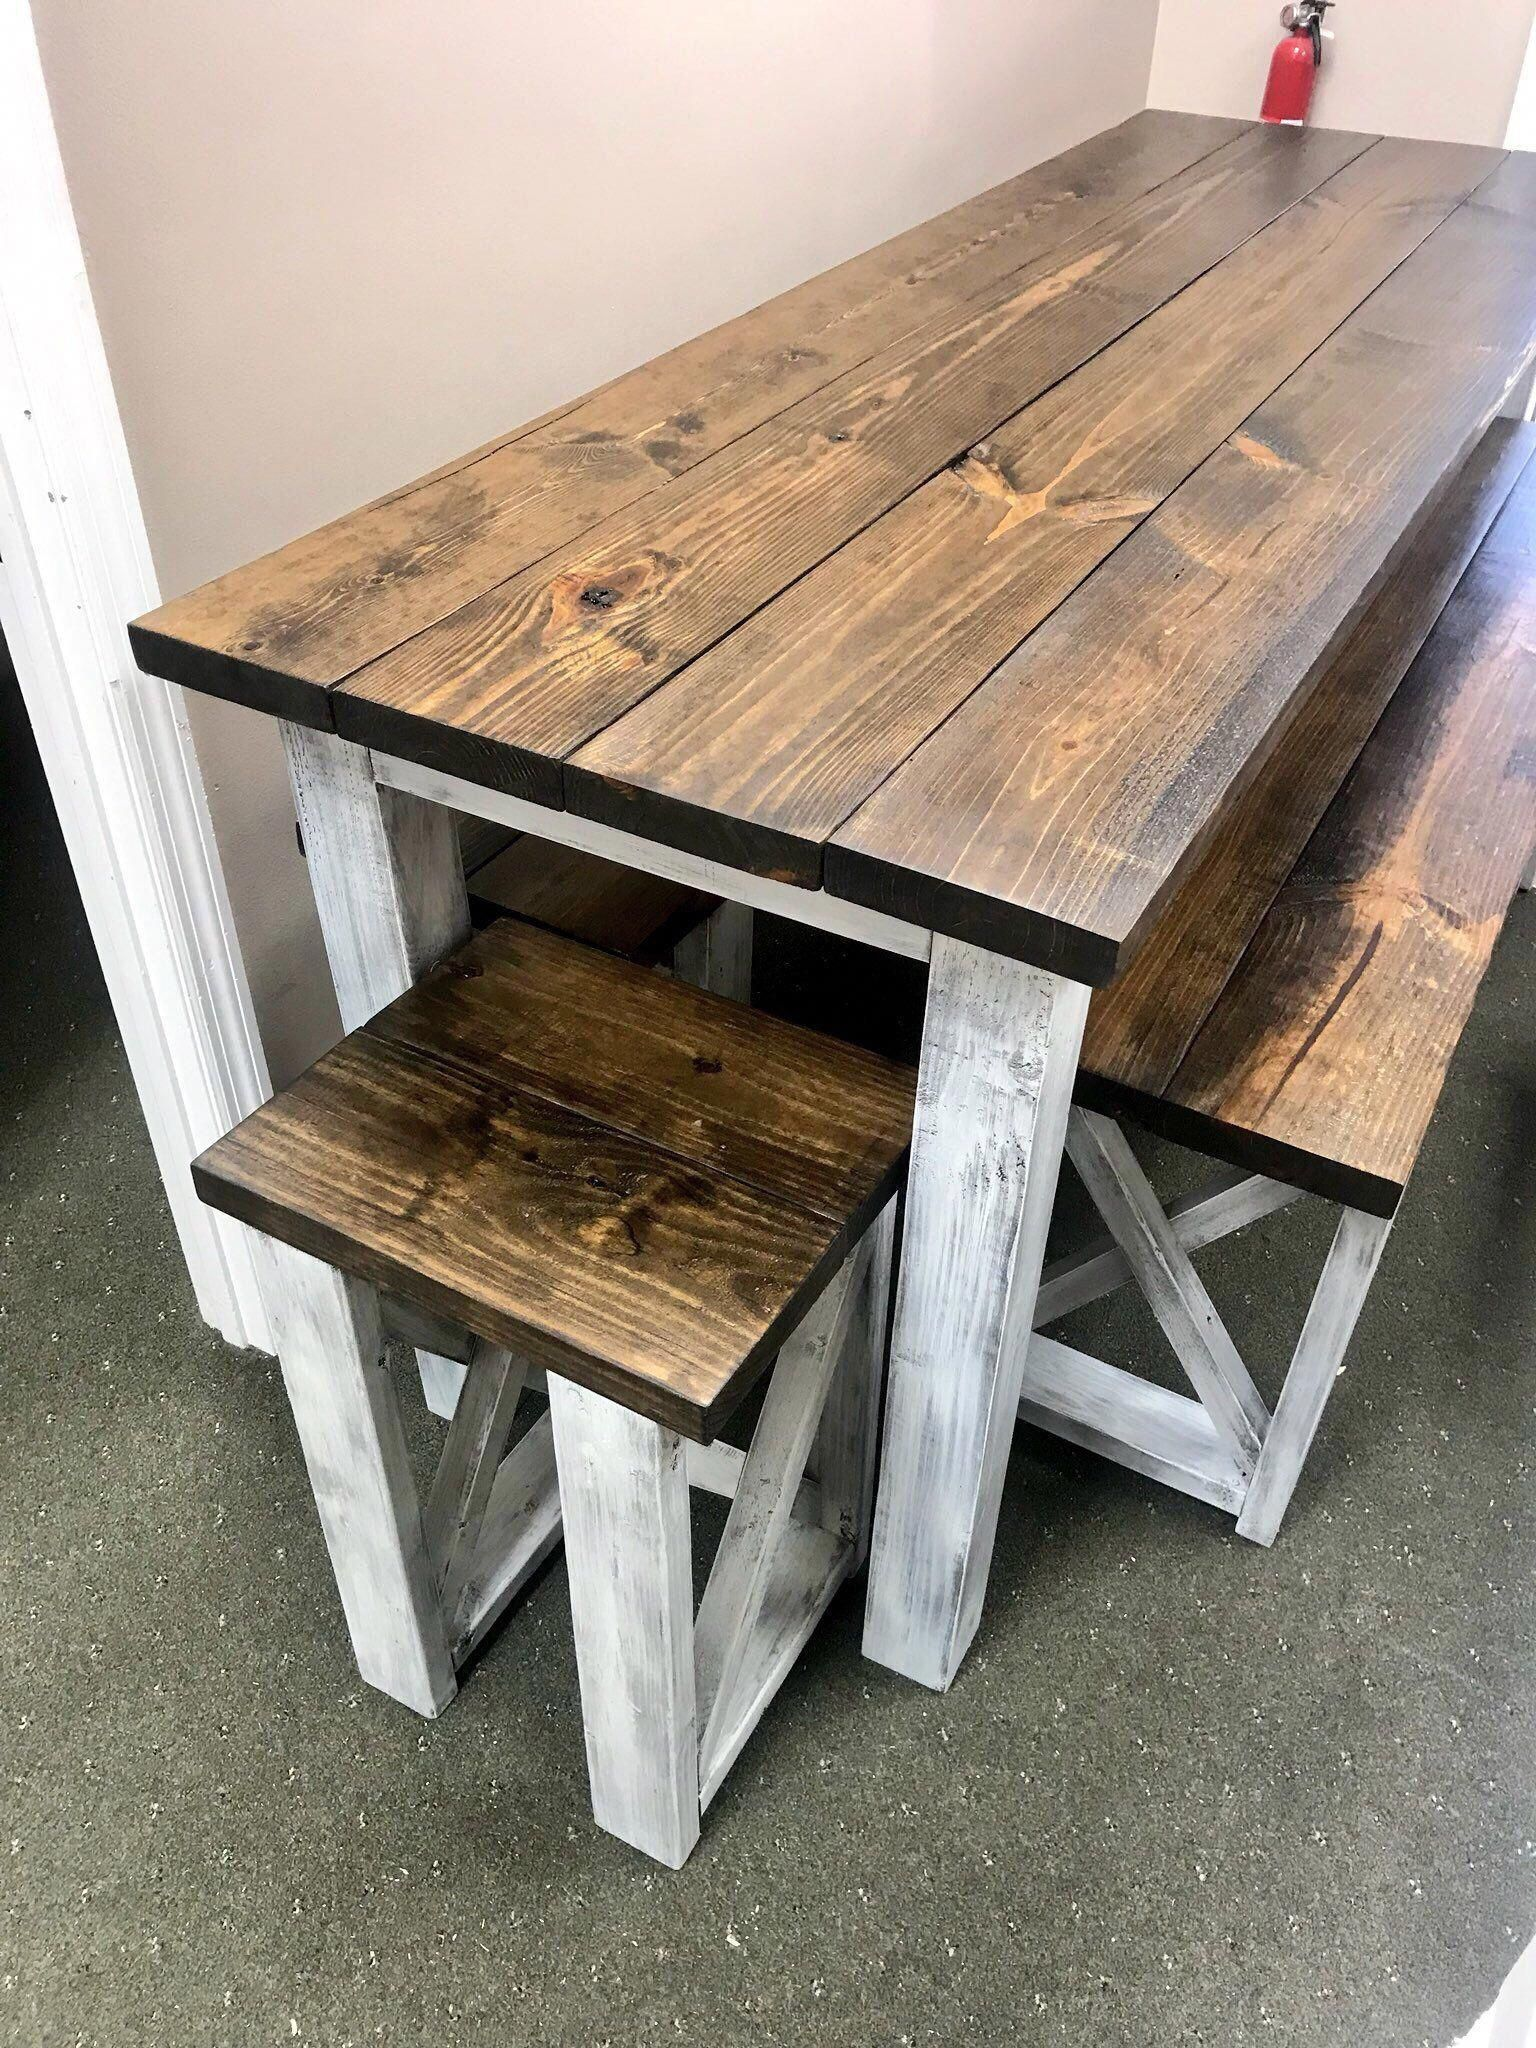 Long Pub Style Farmhouse Table Set With Stools And Tall Benches Dark Walnut Top With White Distressed Base Tall Farmhouse Table Set In 2020 Rustic Kitchen Tables Farmhouse Table Setting Farmhouse